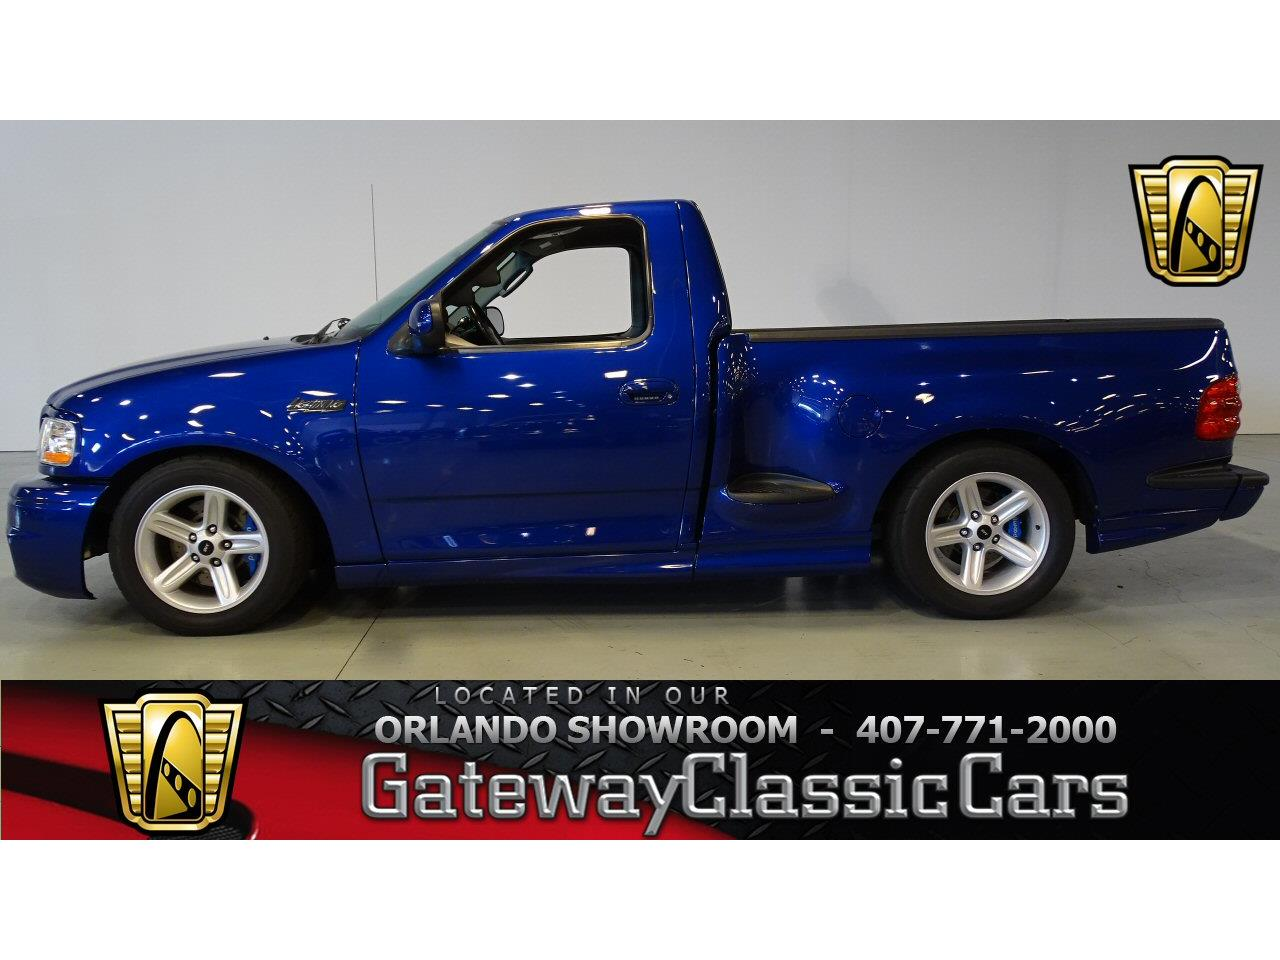 Large picture of 04 f150 koak